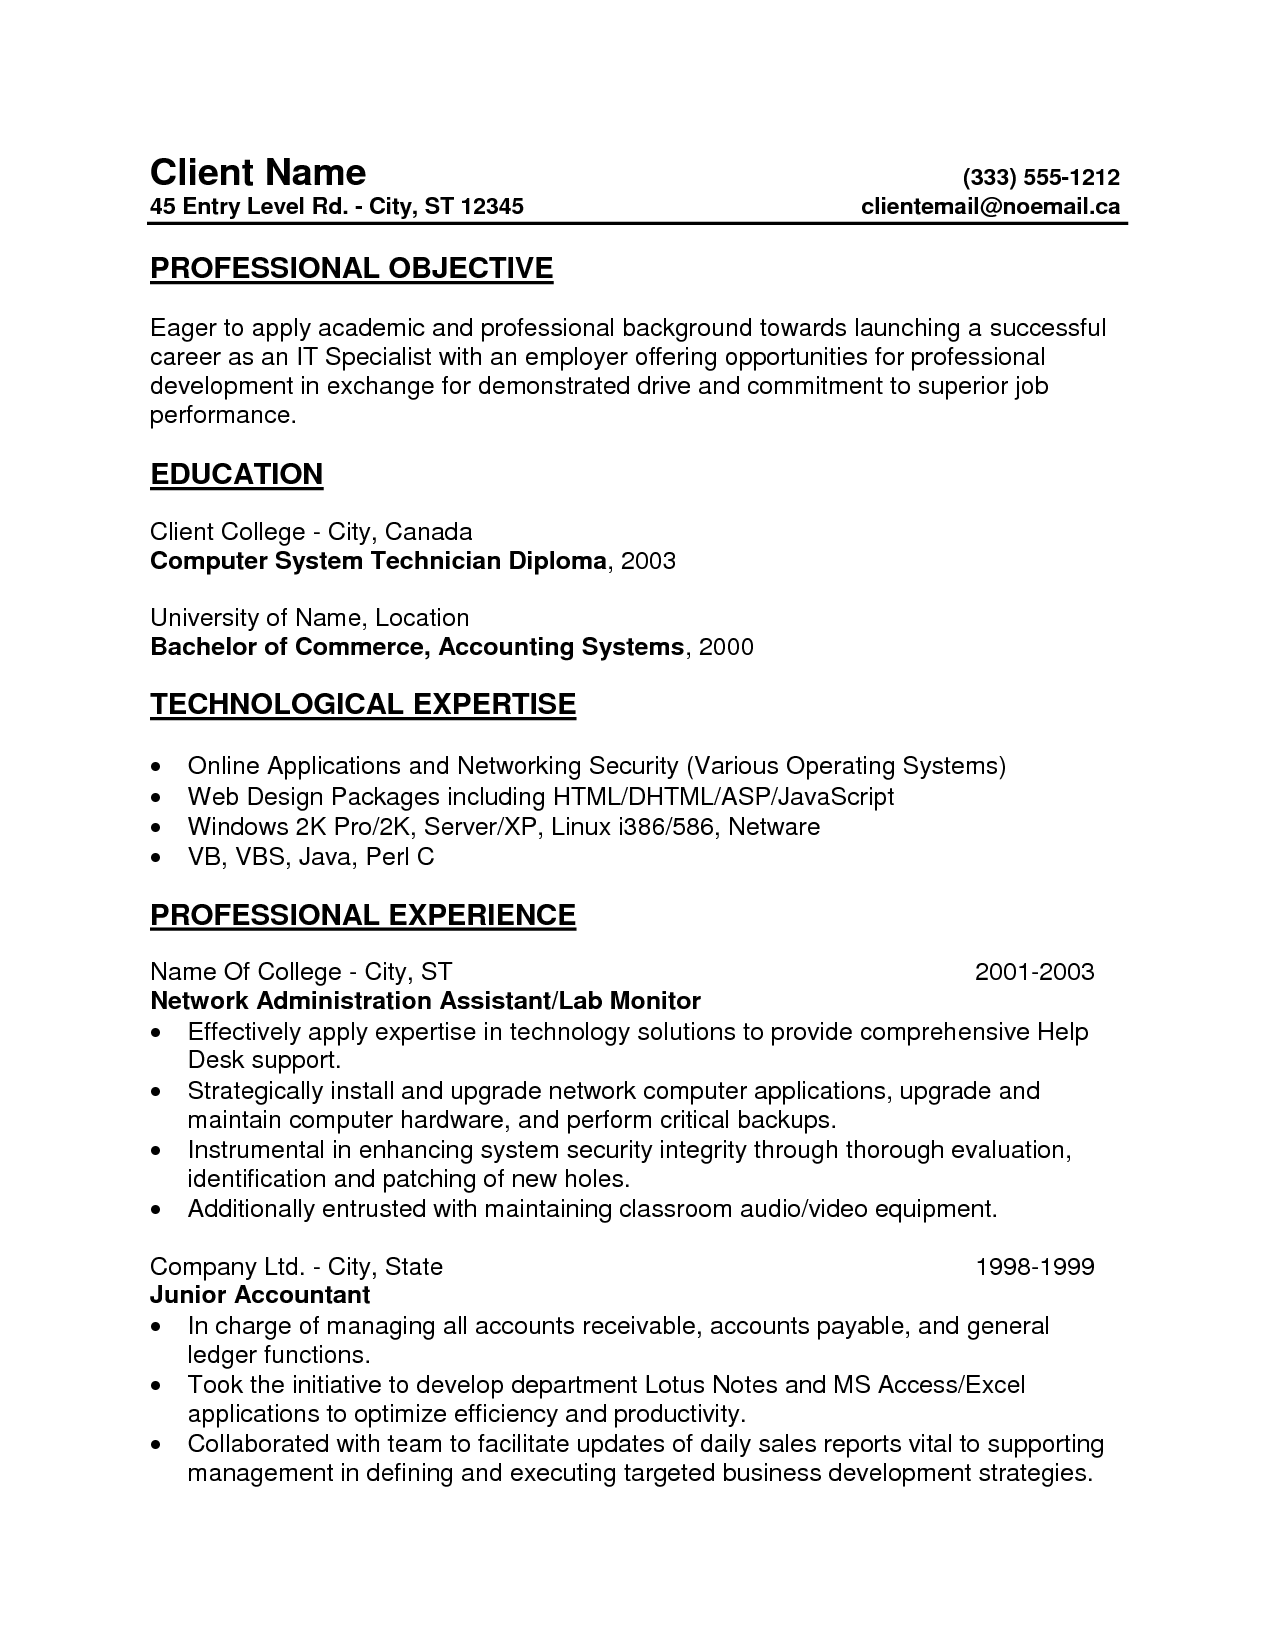 Entry Level Resume Professional Objective And Professional